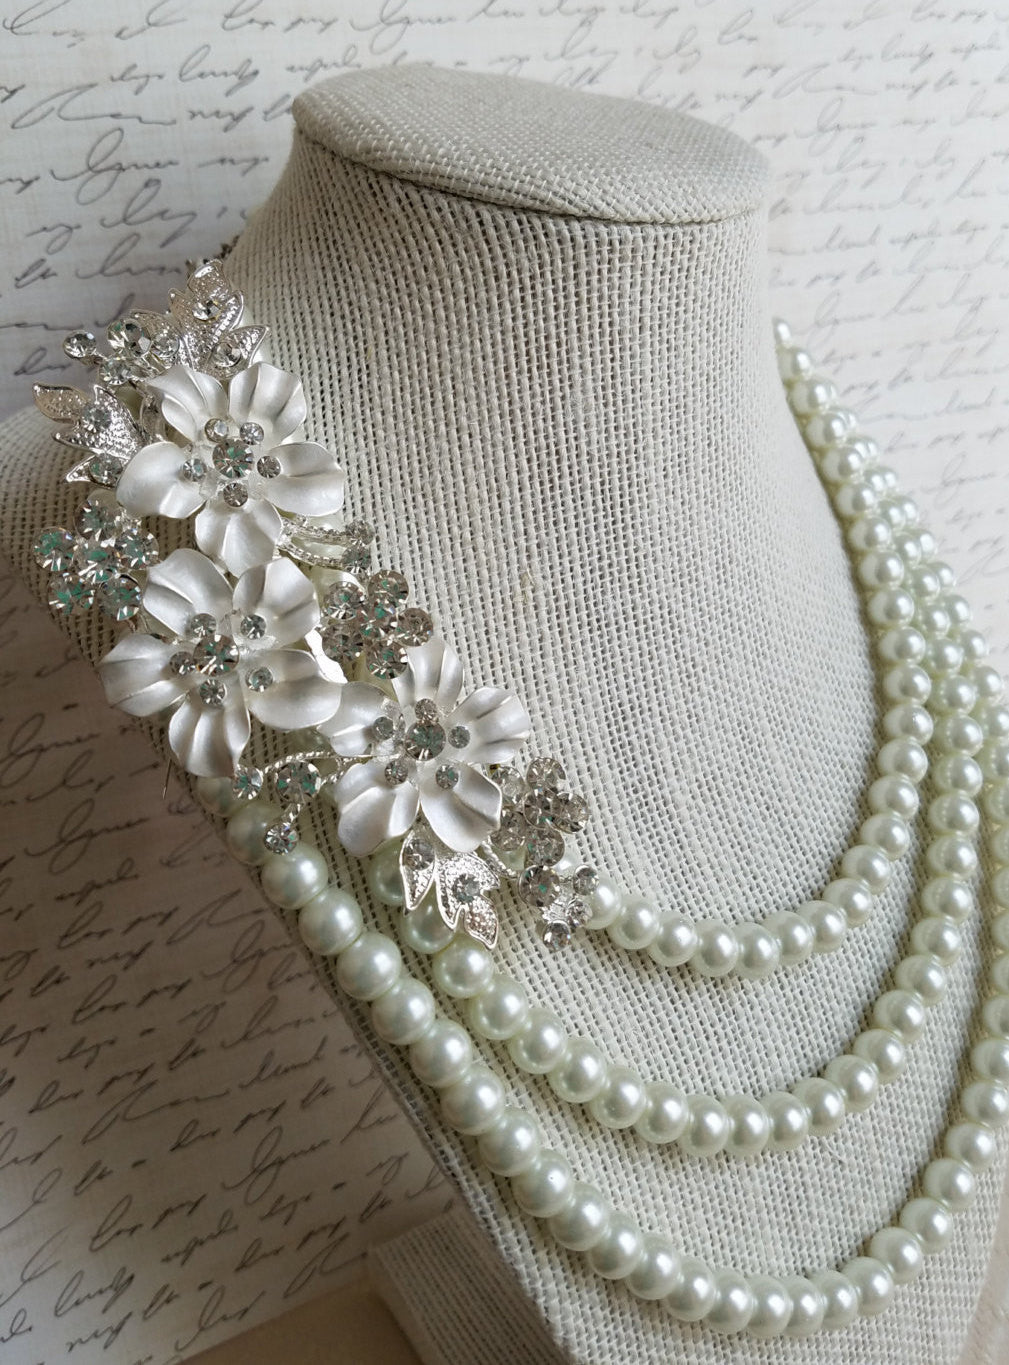 Pearl bridal necklace flower crystal brooch statement necklace wedding 3 strand jewelry